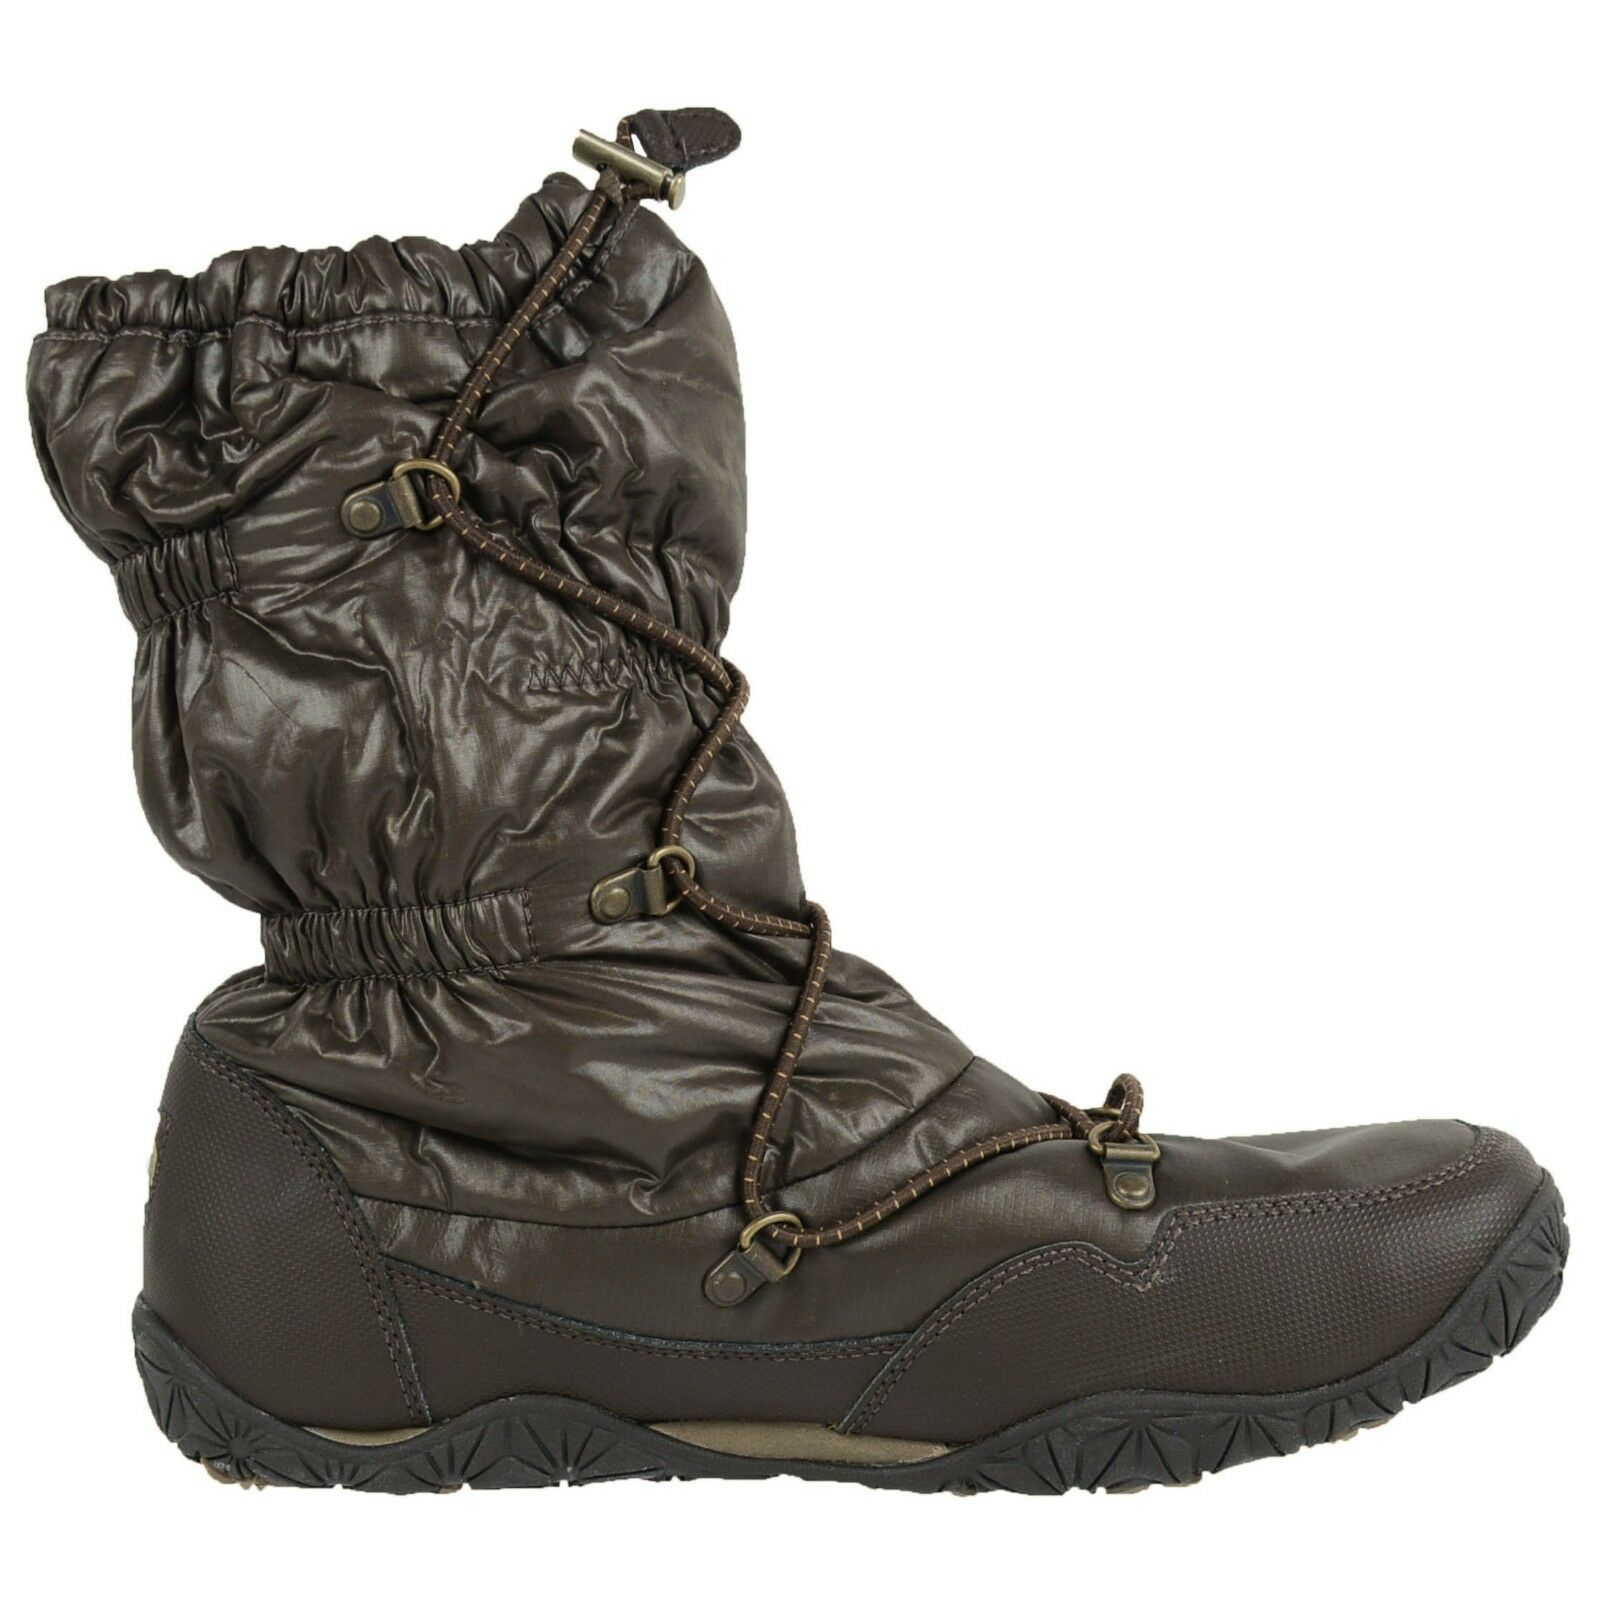 THE NORTH FACE FACE FACE WMNS ICE QUEEN WINTER BOOTS SHINY DEMITASSE BROWN APPXFG6 SZ 9.5 0197d4